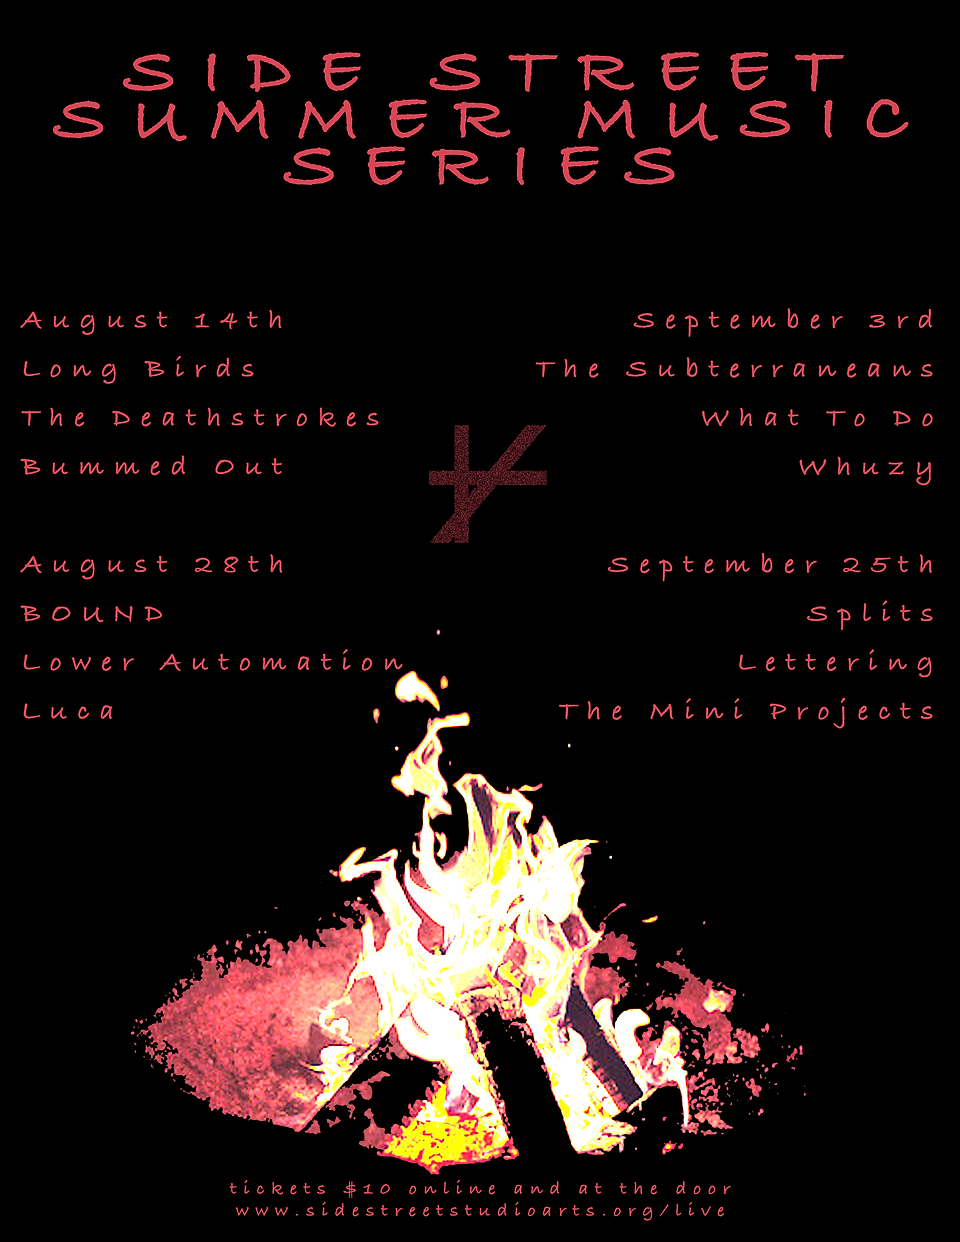 SS SUMMER SERIES POSTER 1.png